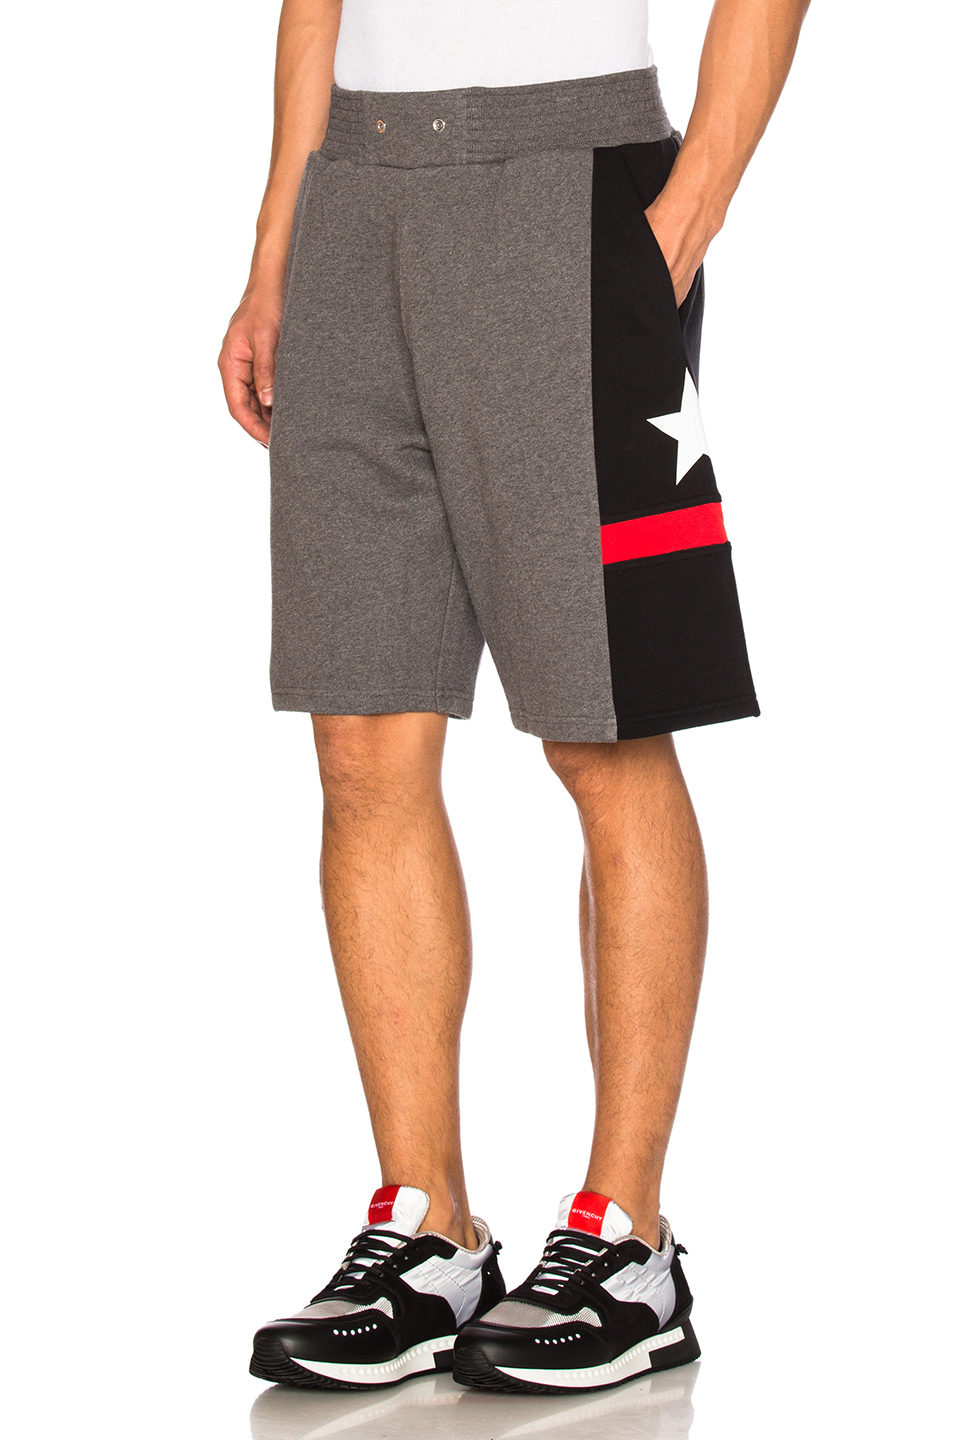 Givenchy Bermuda Shorts in Gray